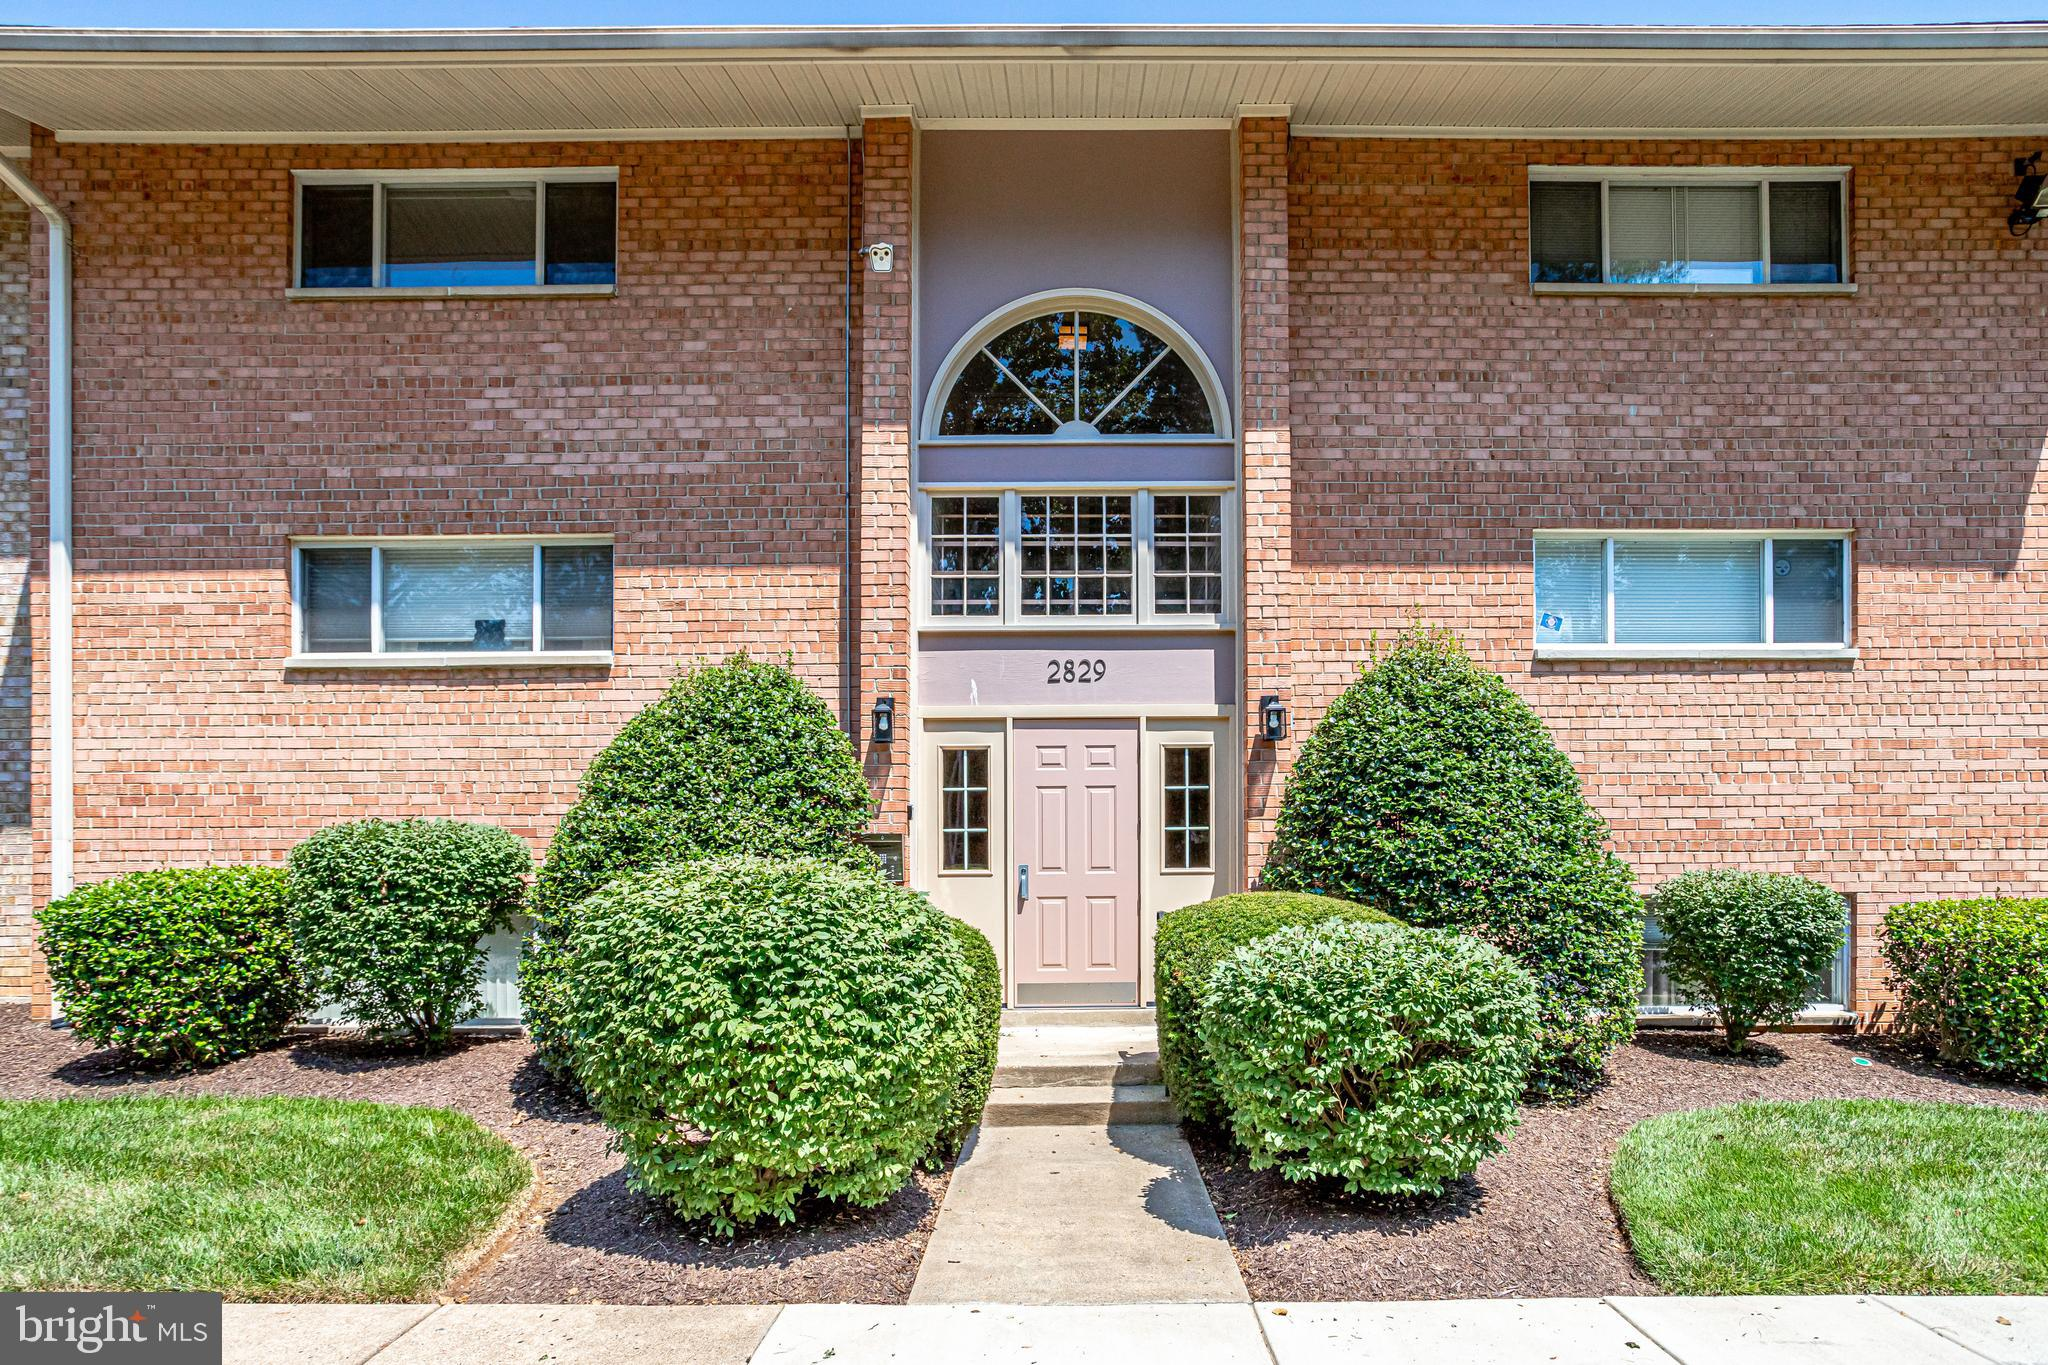 Get It While It's HOT!   Great Falls Church location with metro bus stop at community entrance and just a few minutes to East Falls Church Metro.  Bellsford Landing Condos are a well-kept secret and units rarely become available.  This top floor unit features a sliding door in the living room to a very spacious private balcony.  No looking over a parking lot here. A skylight to enhance more natural light flooding into the home. Huge bedroom with a closet expanding full width of the room plus a large walk in closet with shelving.  A great amount of closet space and storage.  A stacked washer/dryer located in the kitchen. Separate dining with space for a table setting of four. The building offers a fitness room located on the lower level and a secure main door entrance. Permit parking and plenty of guest parking available.  Fine and casual dining along with movie theater and shopping at The Mosaic District and INOVA Hospital a short distance away. With easy access to Tysons Corner,  DC, 495 and 66 this prime location is a commuters dream.  Sold AS IS